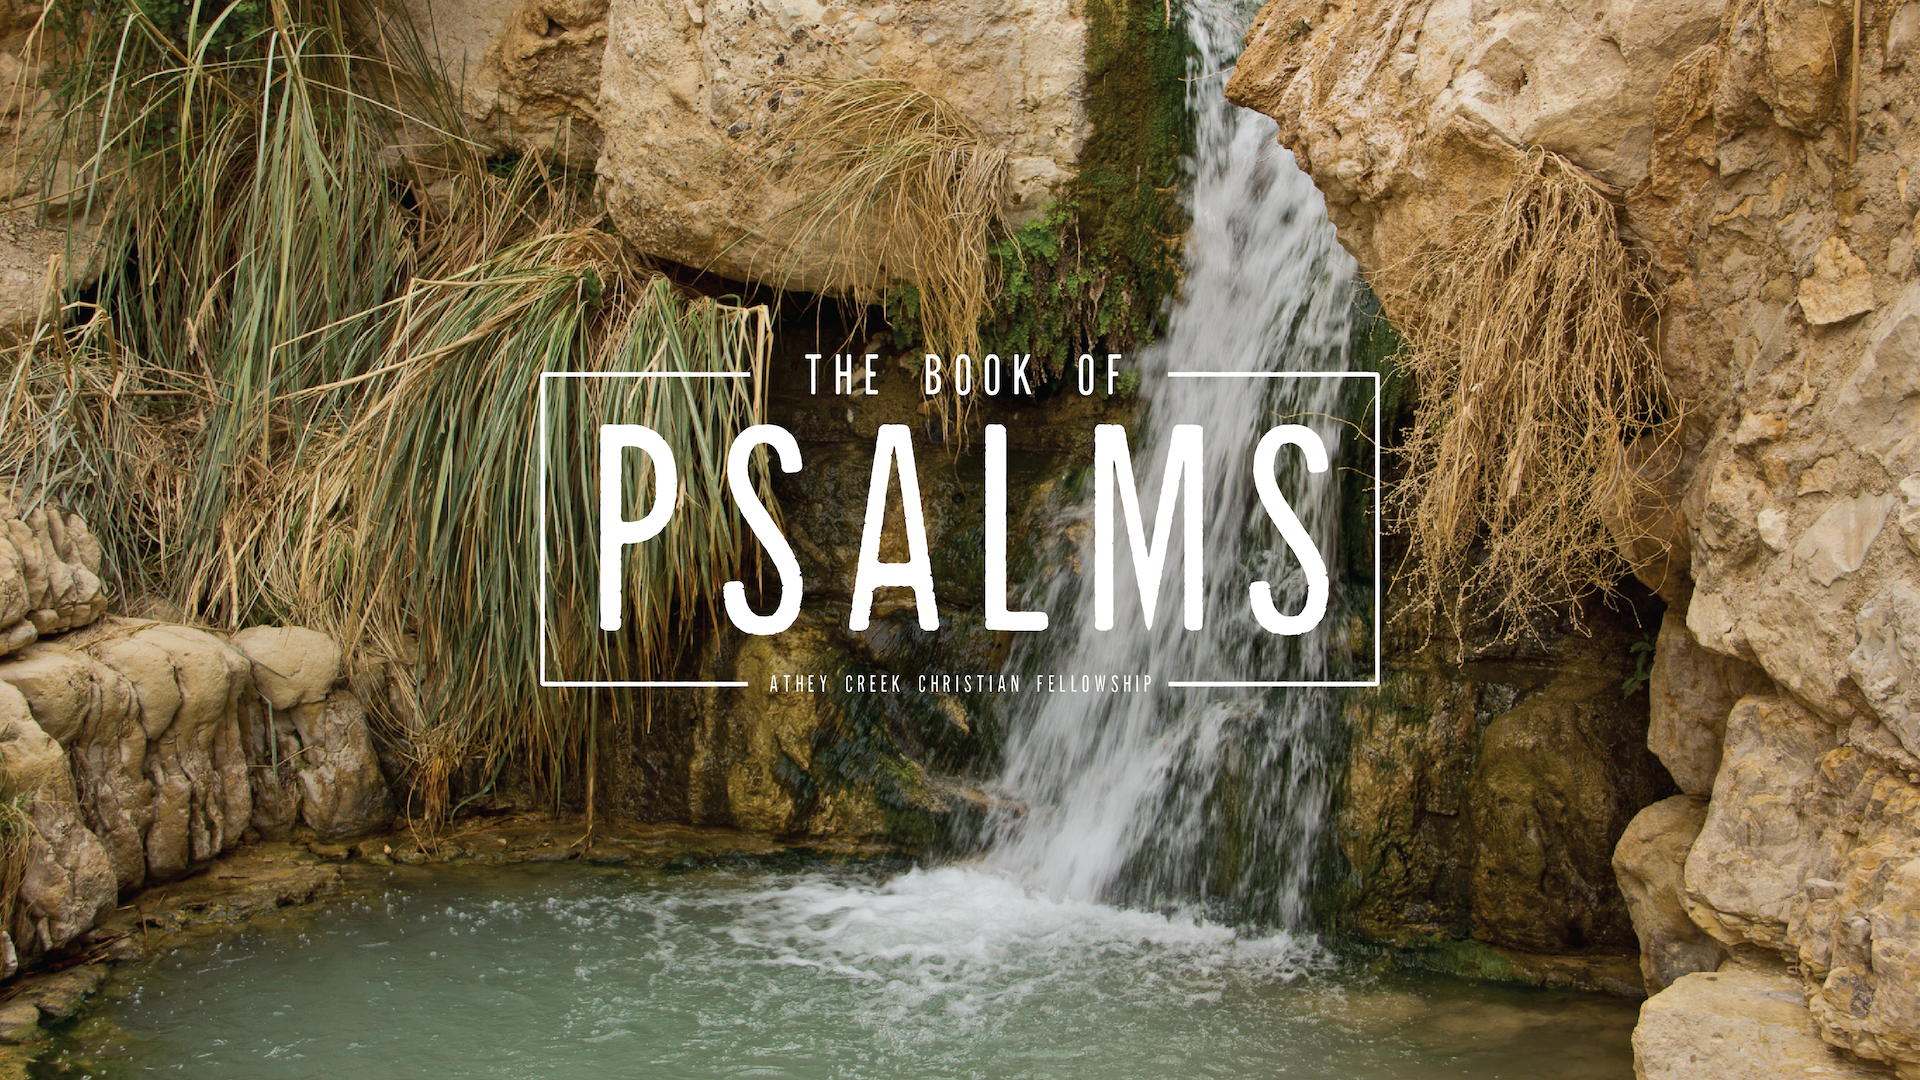 Poster forThrough the Bible (Psalms 31-32)